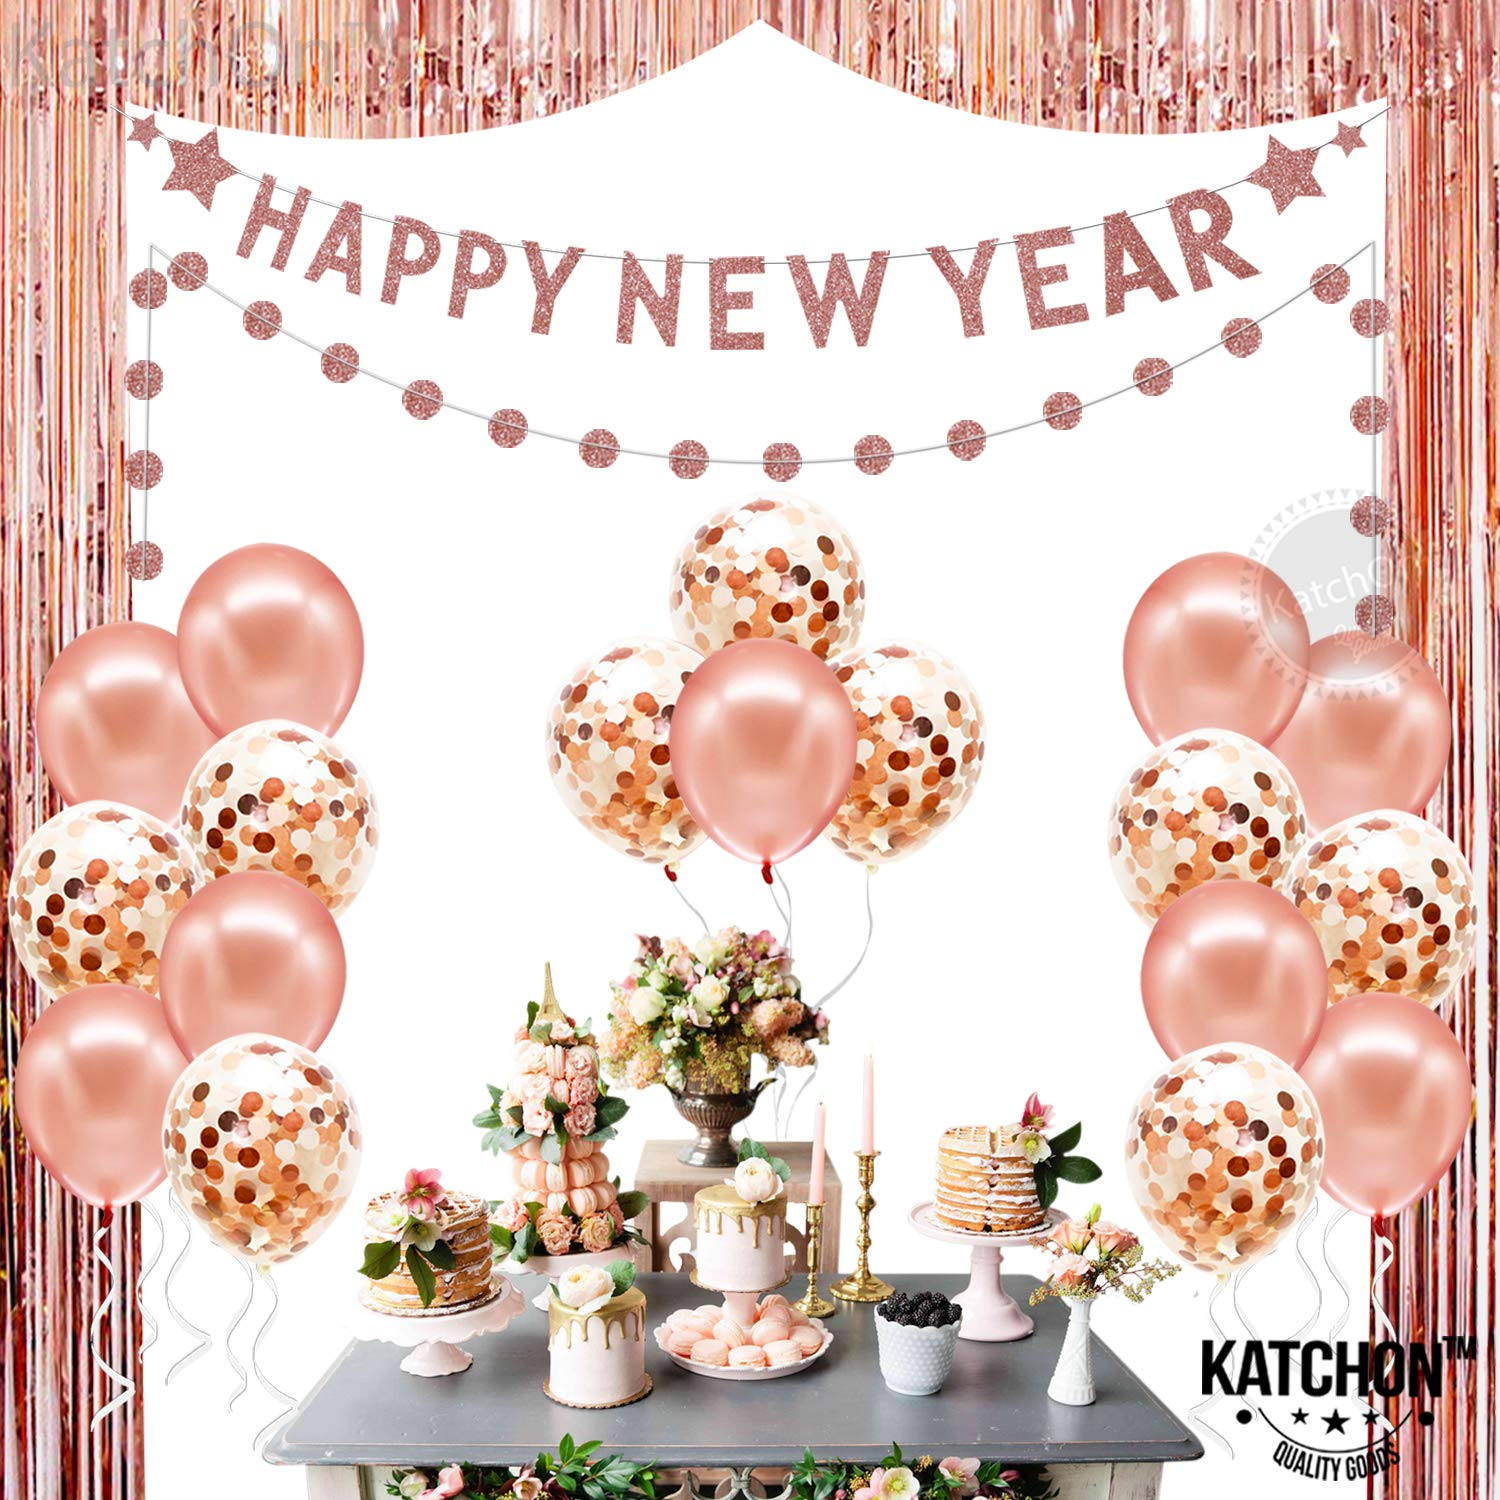 Rose Gold New Years Eve Backdrop Banner Happy New Year Decorations Rose Gold Fringe Foil Tinsel Backdrop| Confetti Balloons Happy New Year Banner Garland Sign |New Years Eve Party Supplies 2020